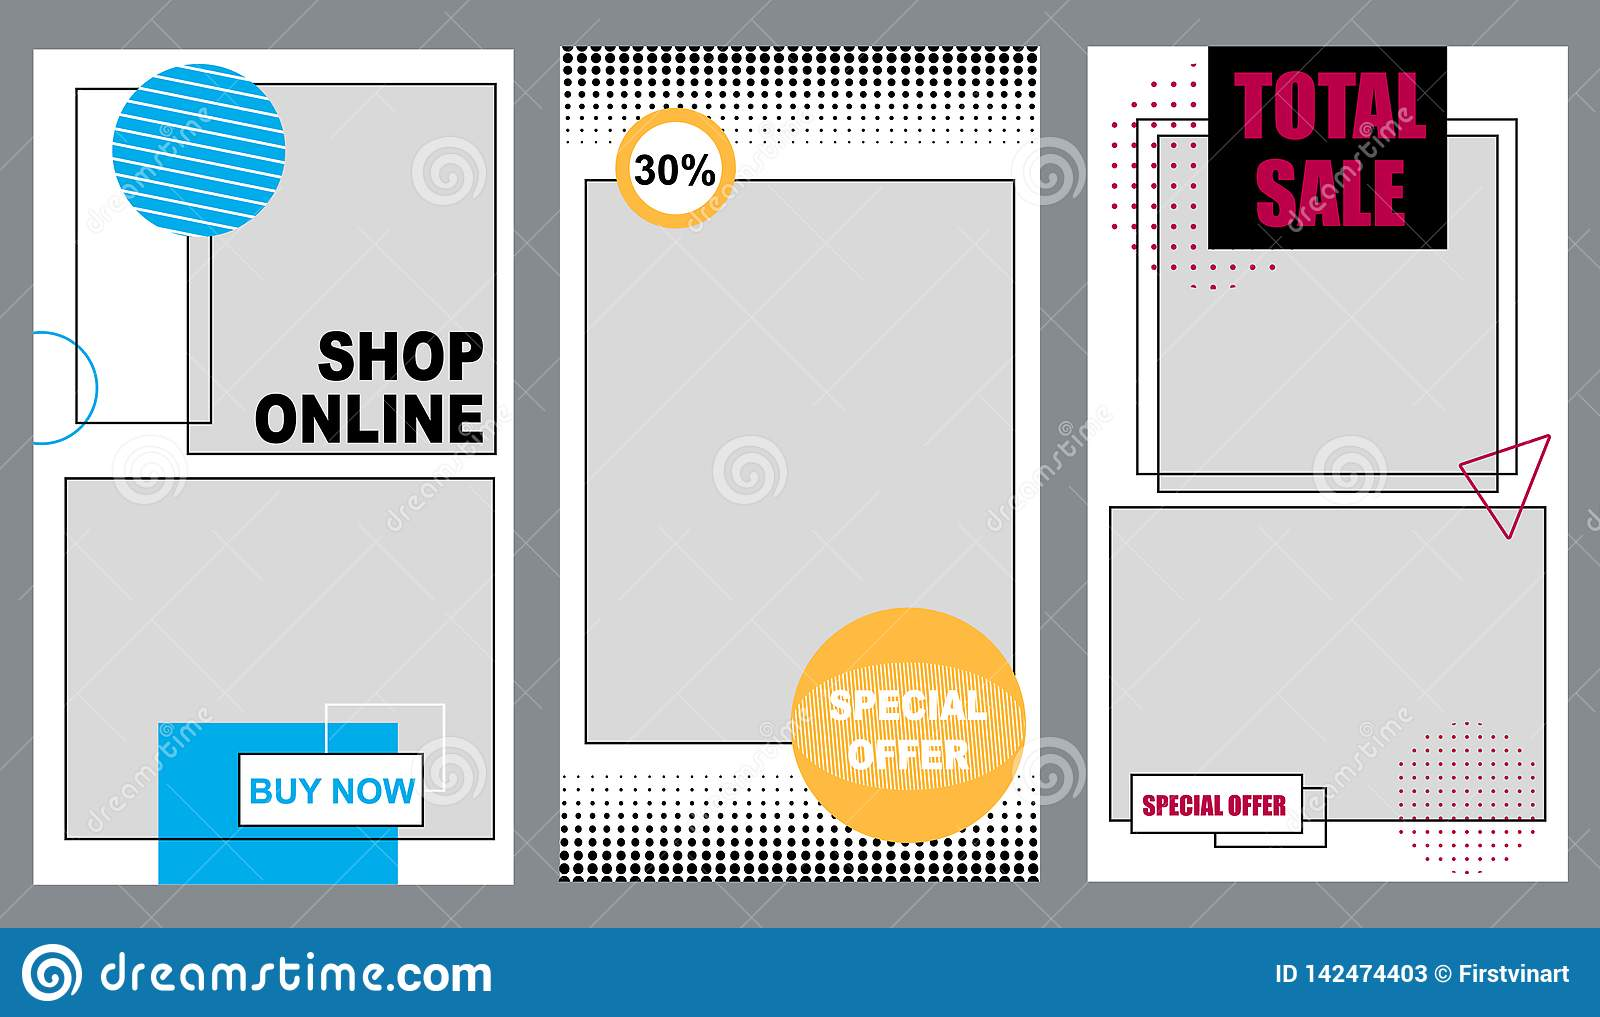 Hop Online 30 Percent Special Offer Total Sale  Stock Vector